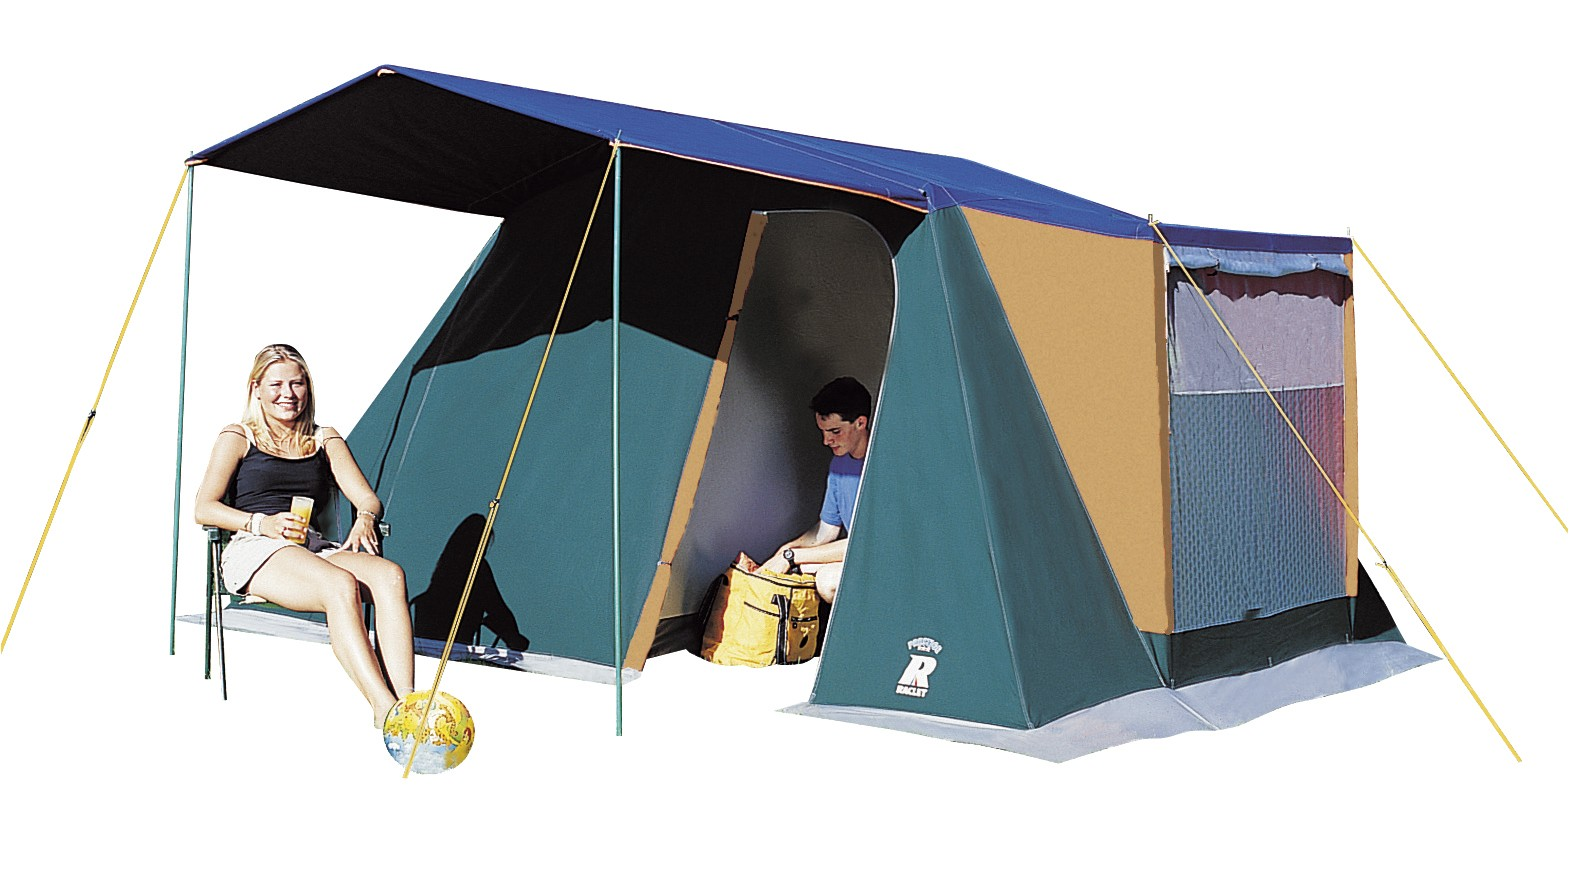 Trigano Baladin 5 Frame Tent from Trigano for £550.00